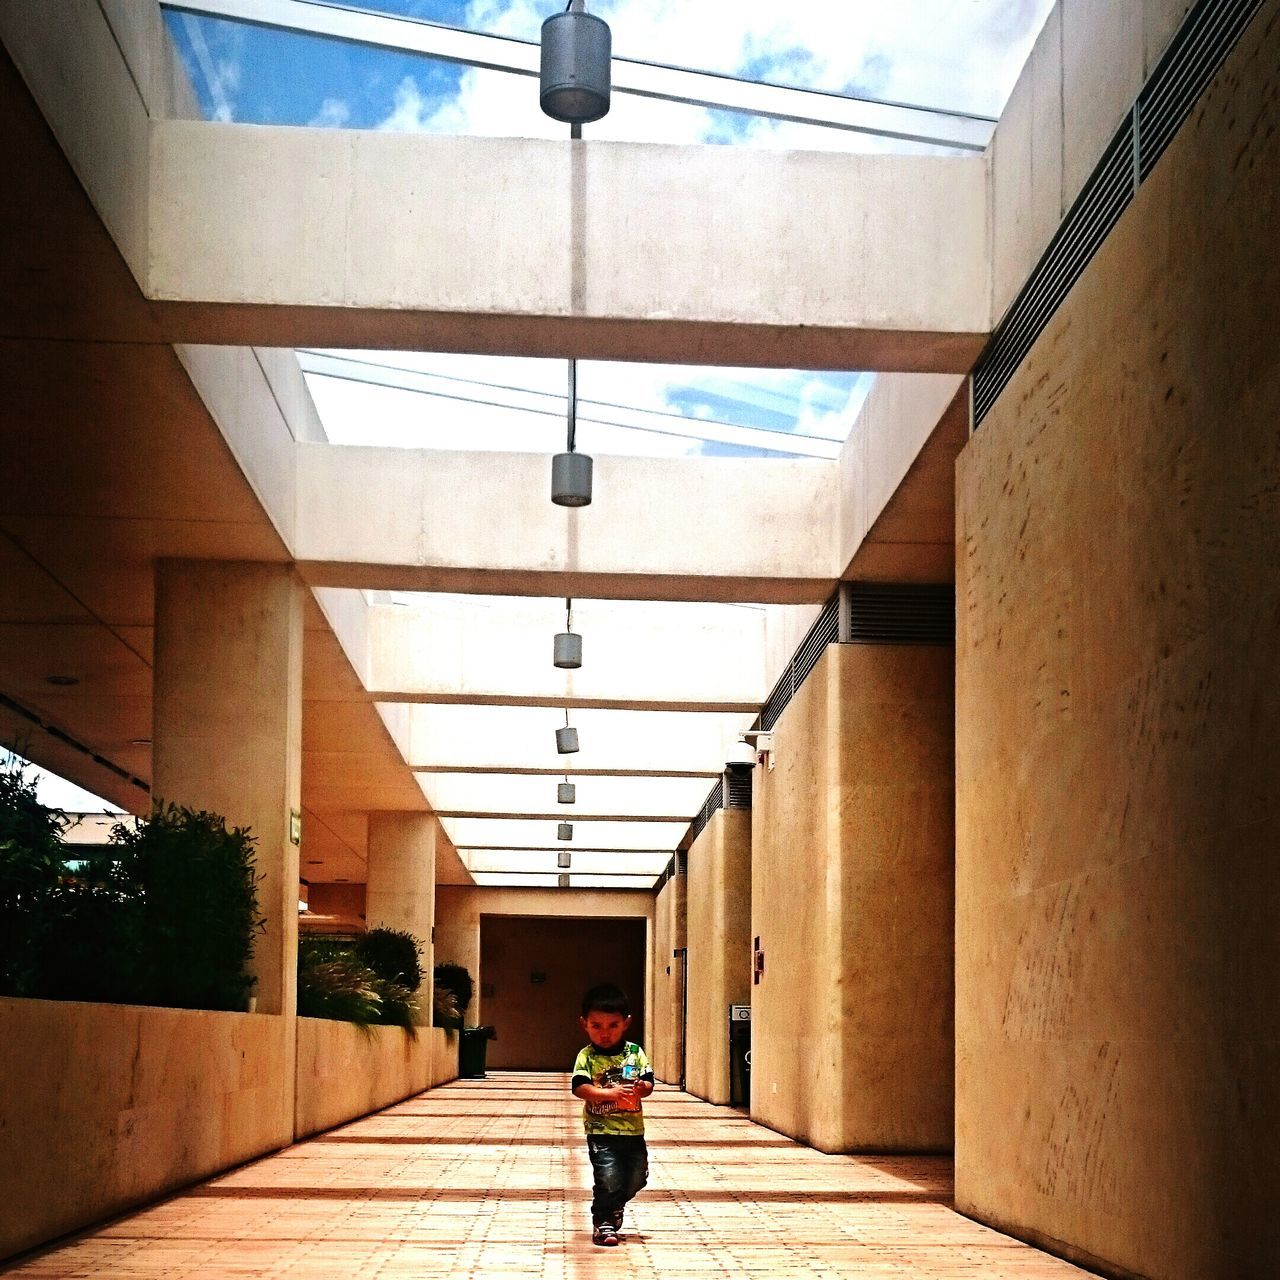 walking, rear view, architecture, one person, real people, built structure, the way forward, full length, day, indoors, women, walkway, people